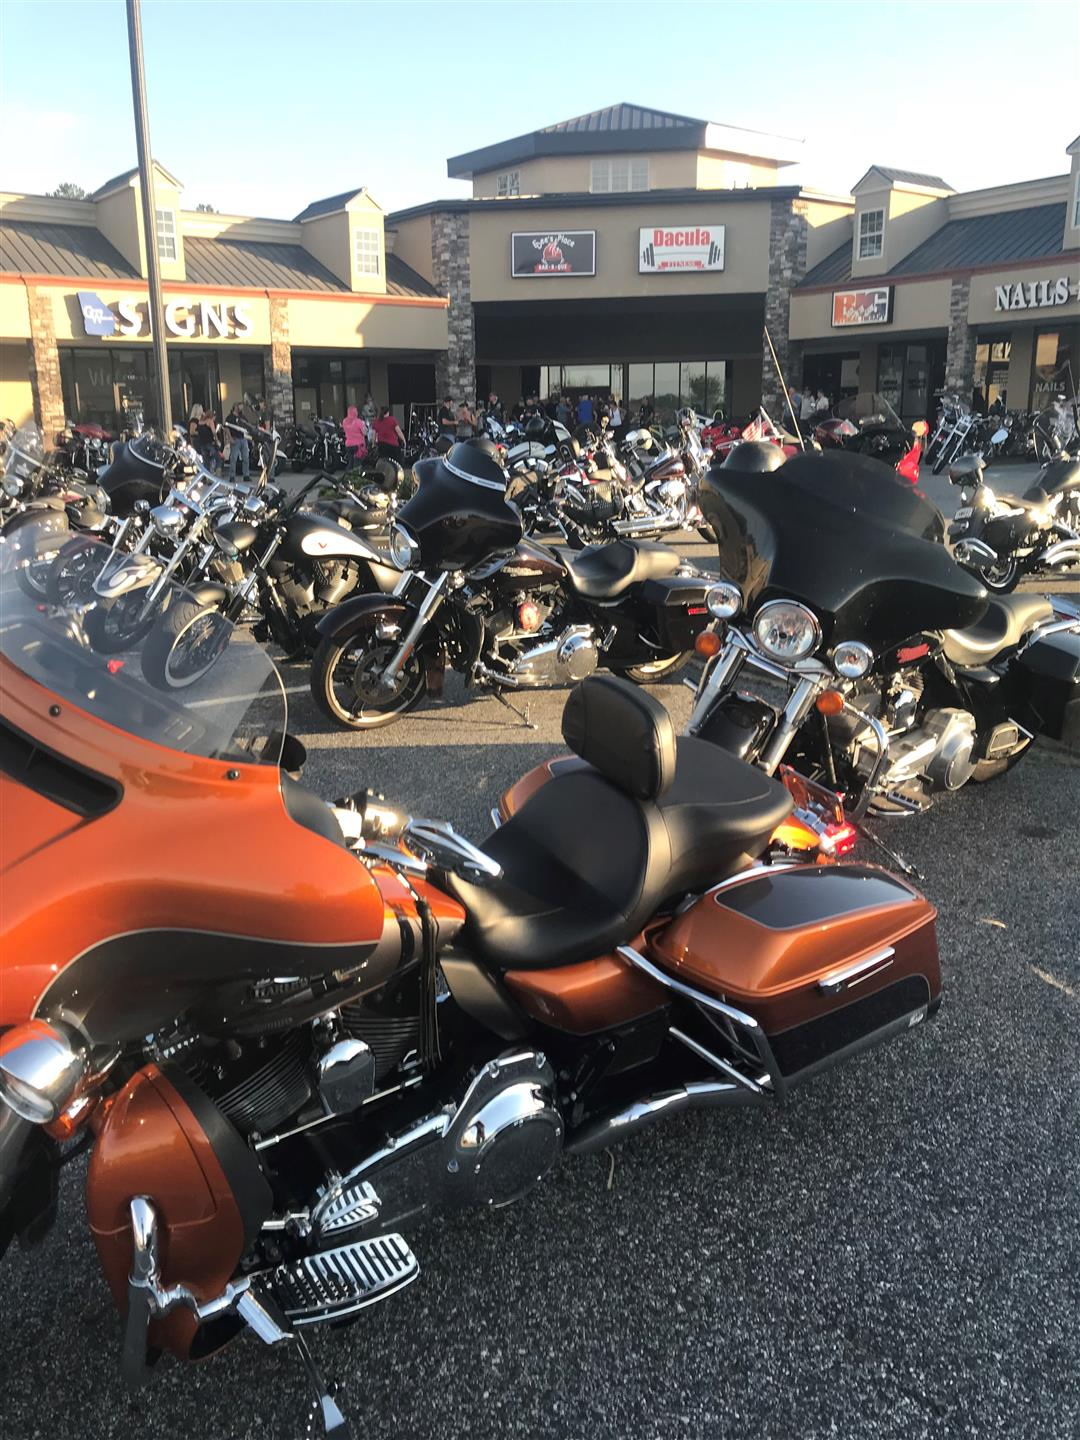 motorcycles parked in a parking lot